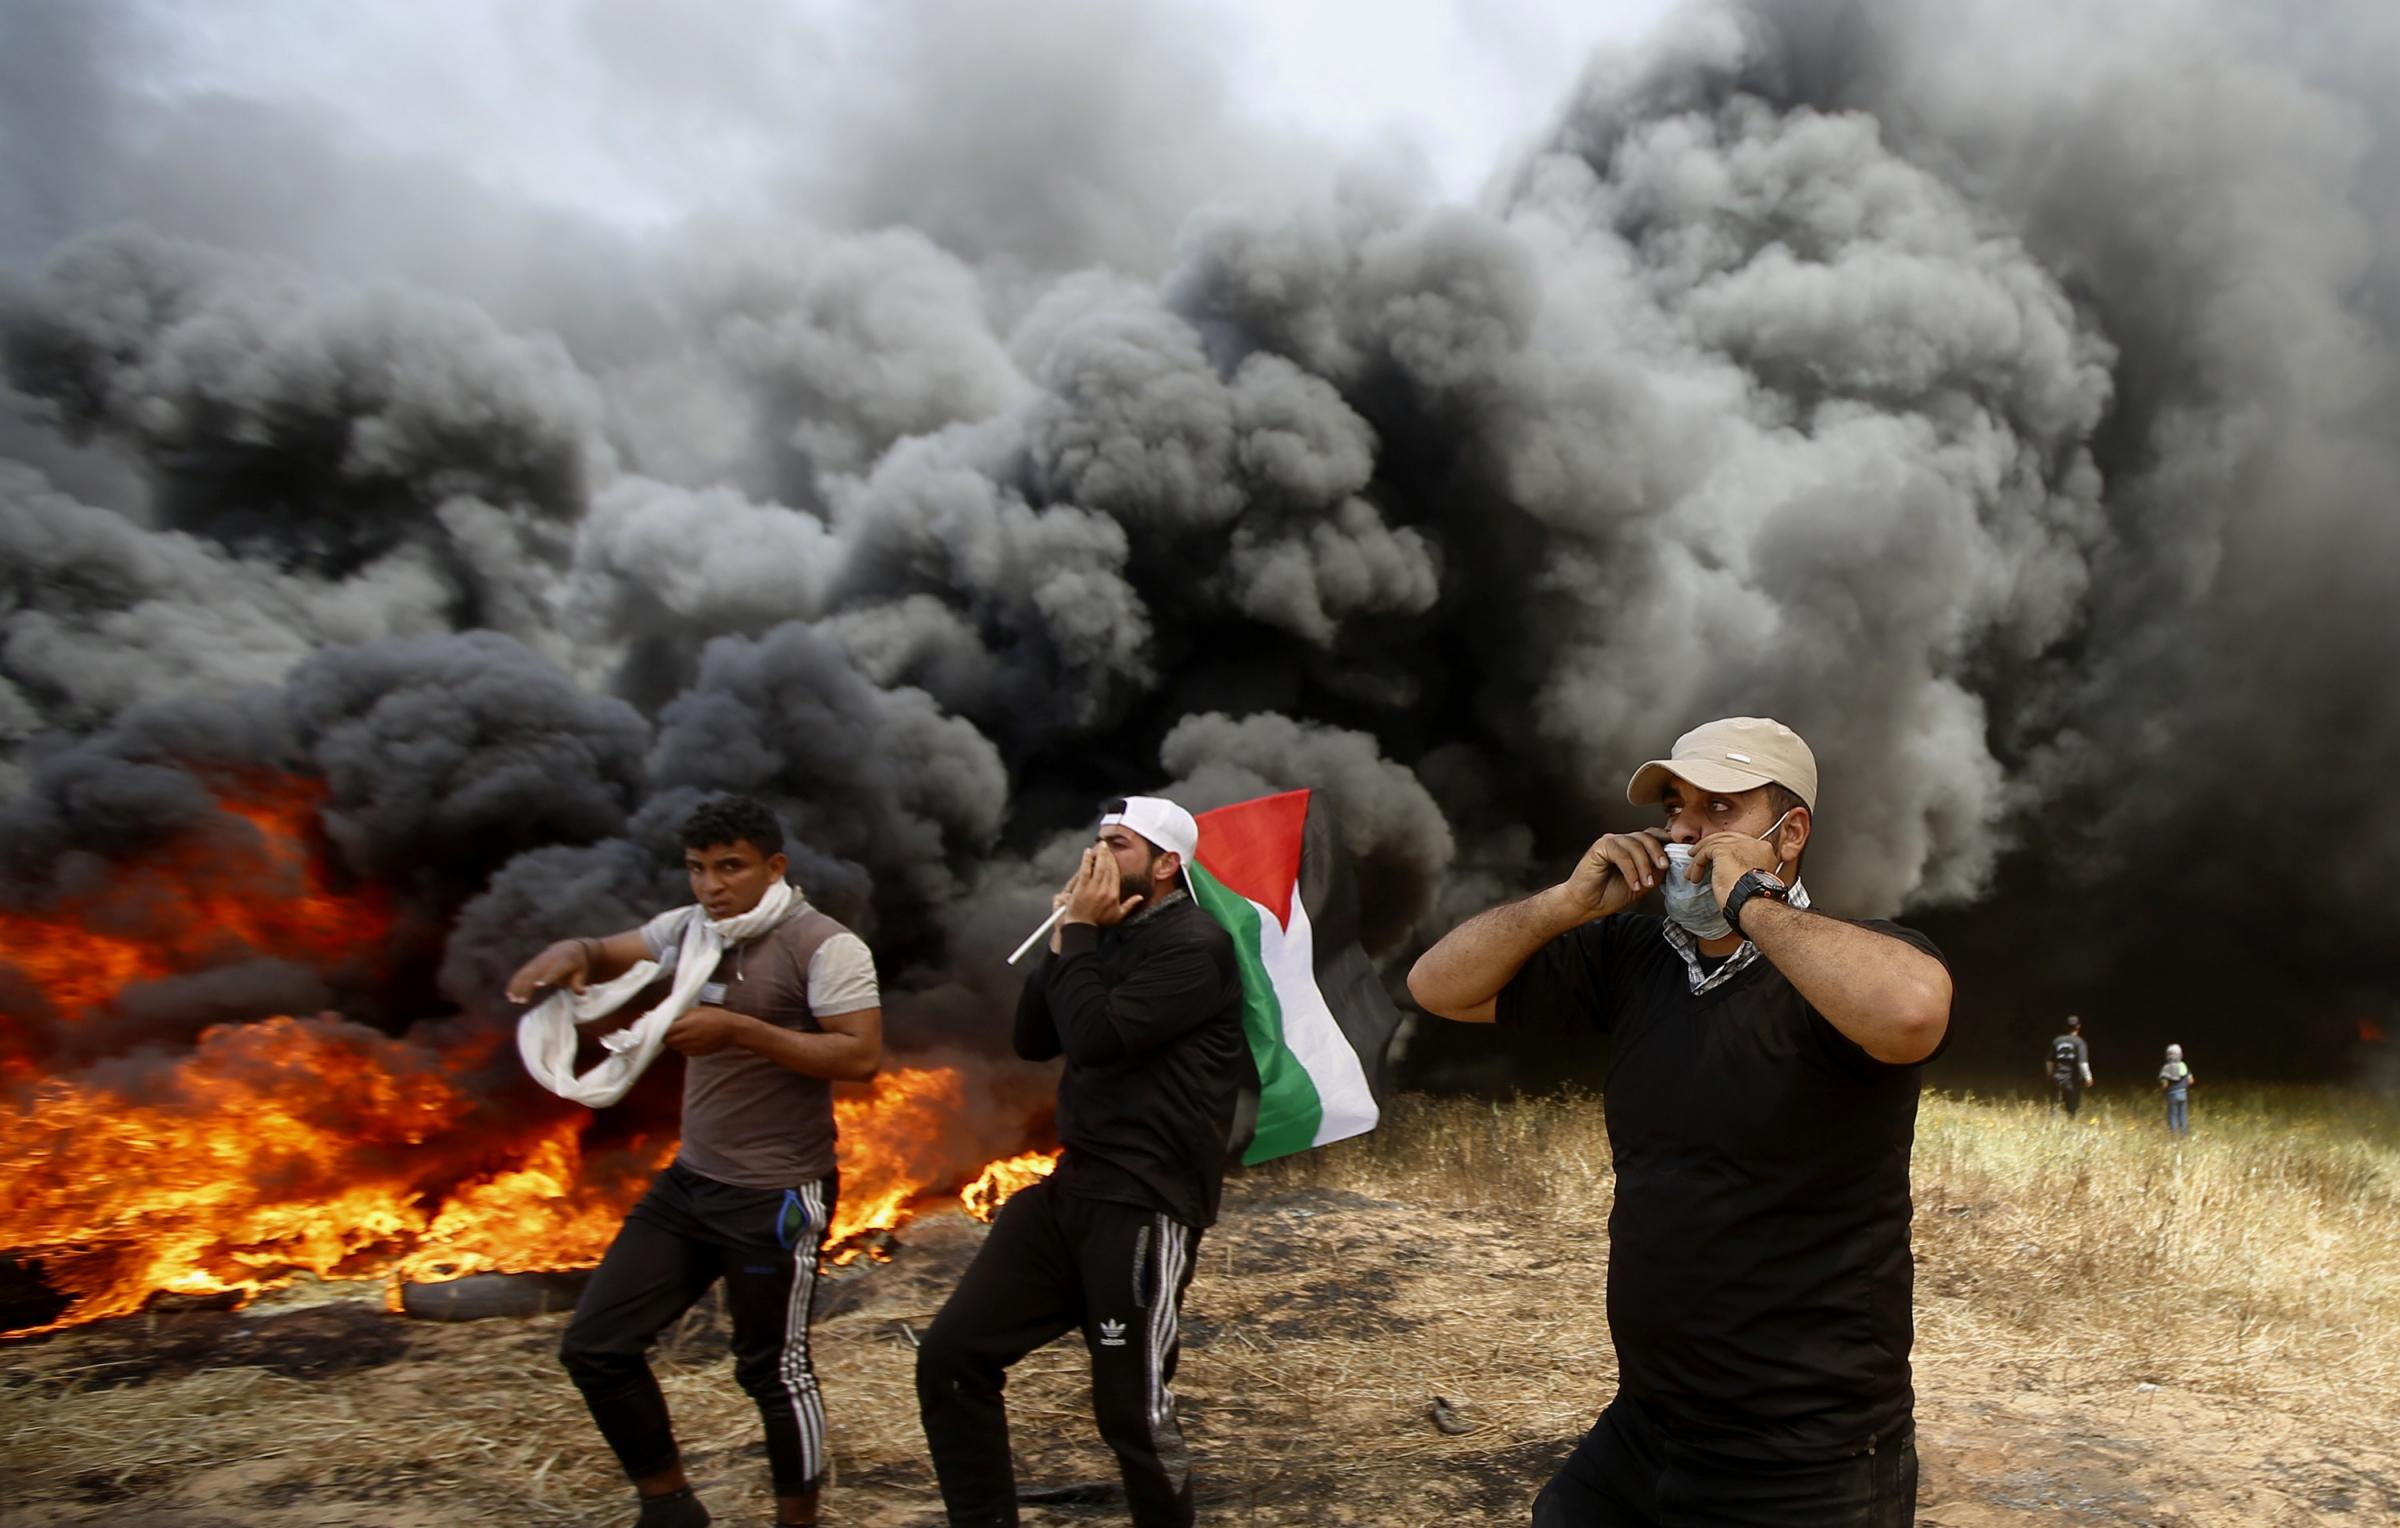 Nine killed and scores wounded by Israeli fire in Gaza protest